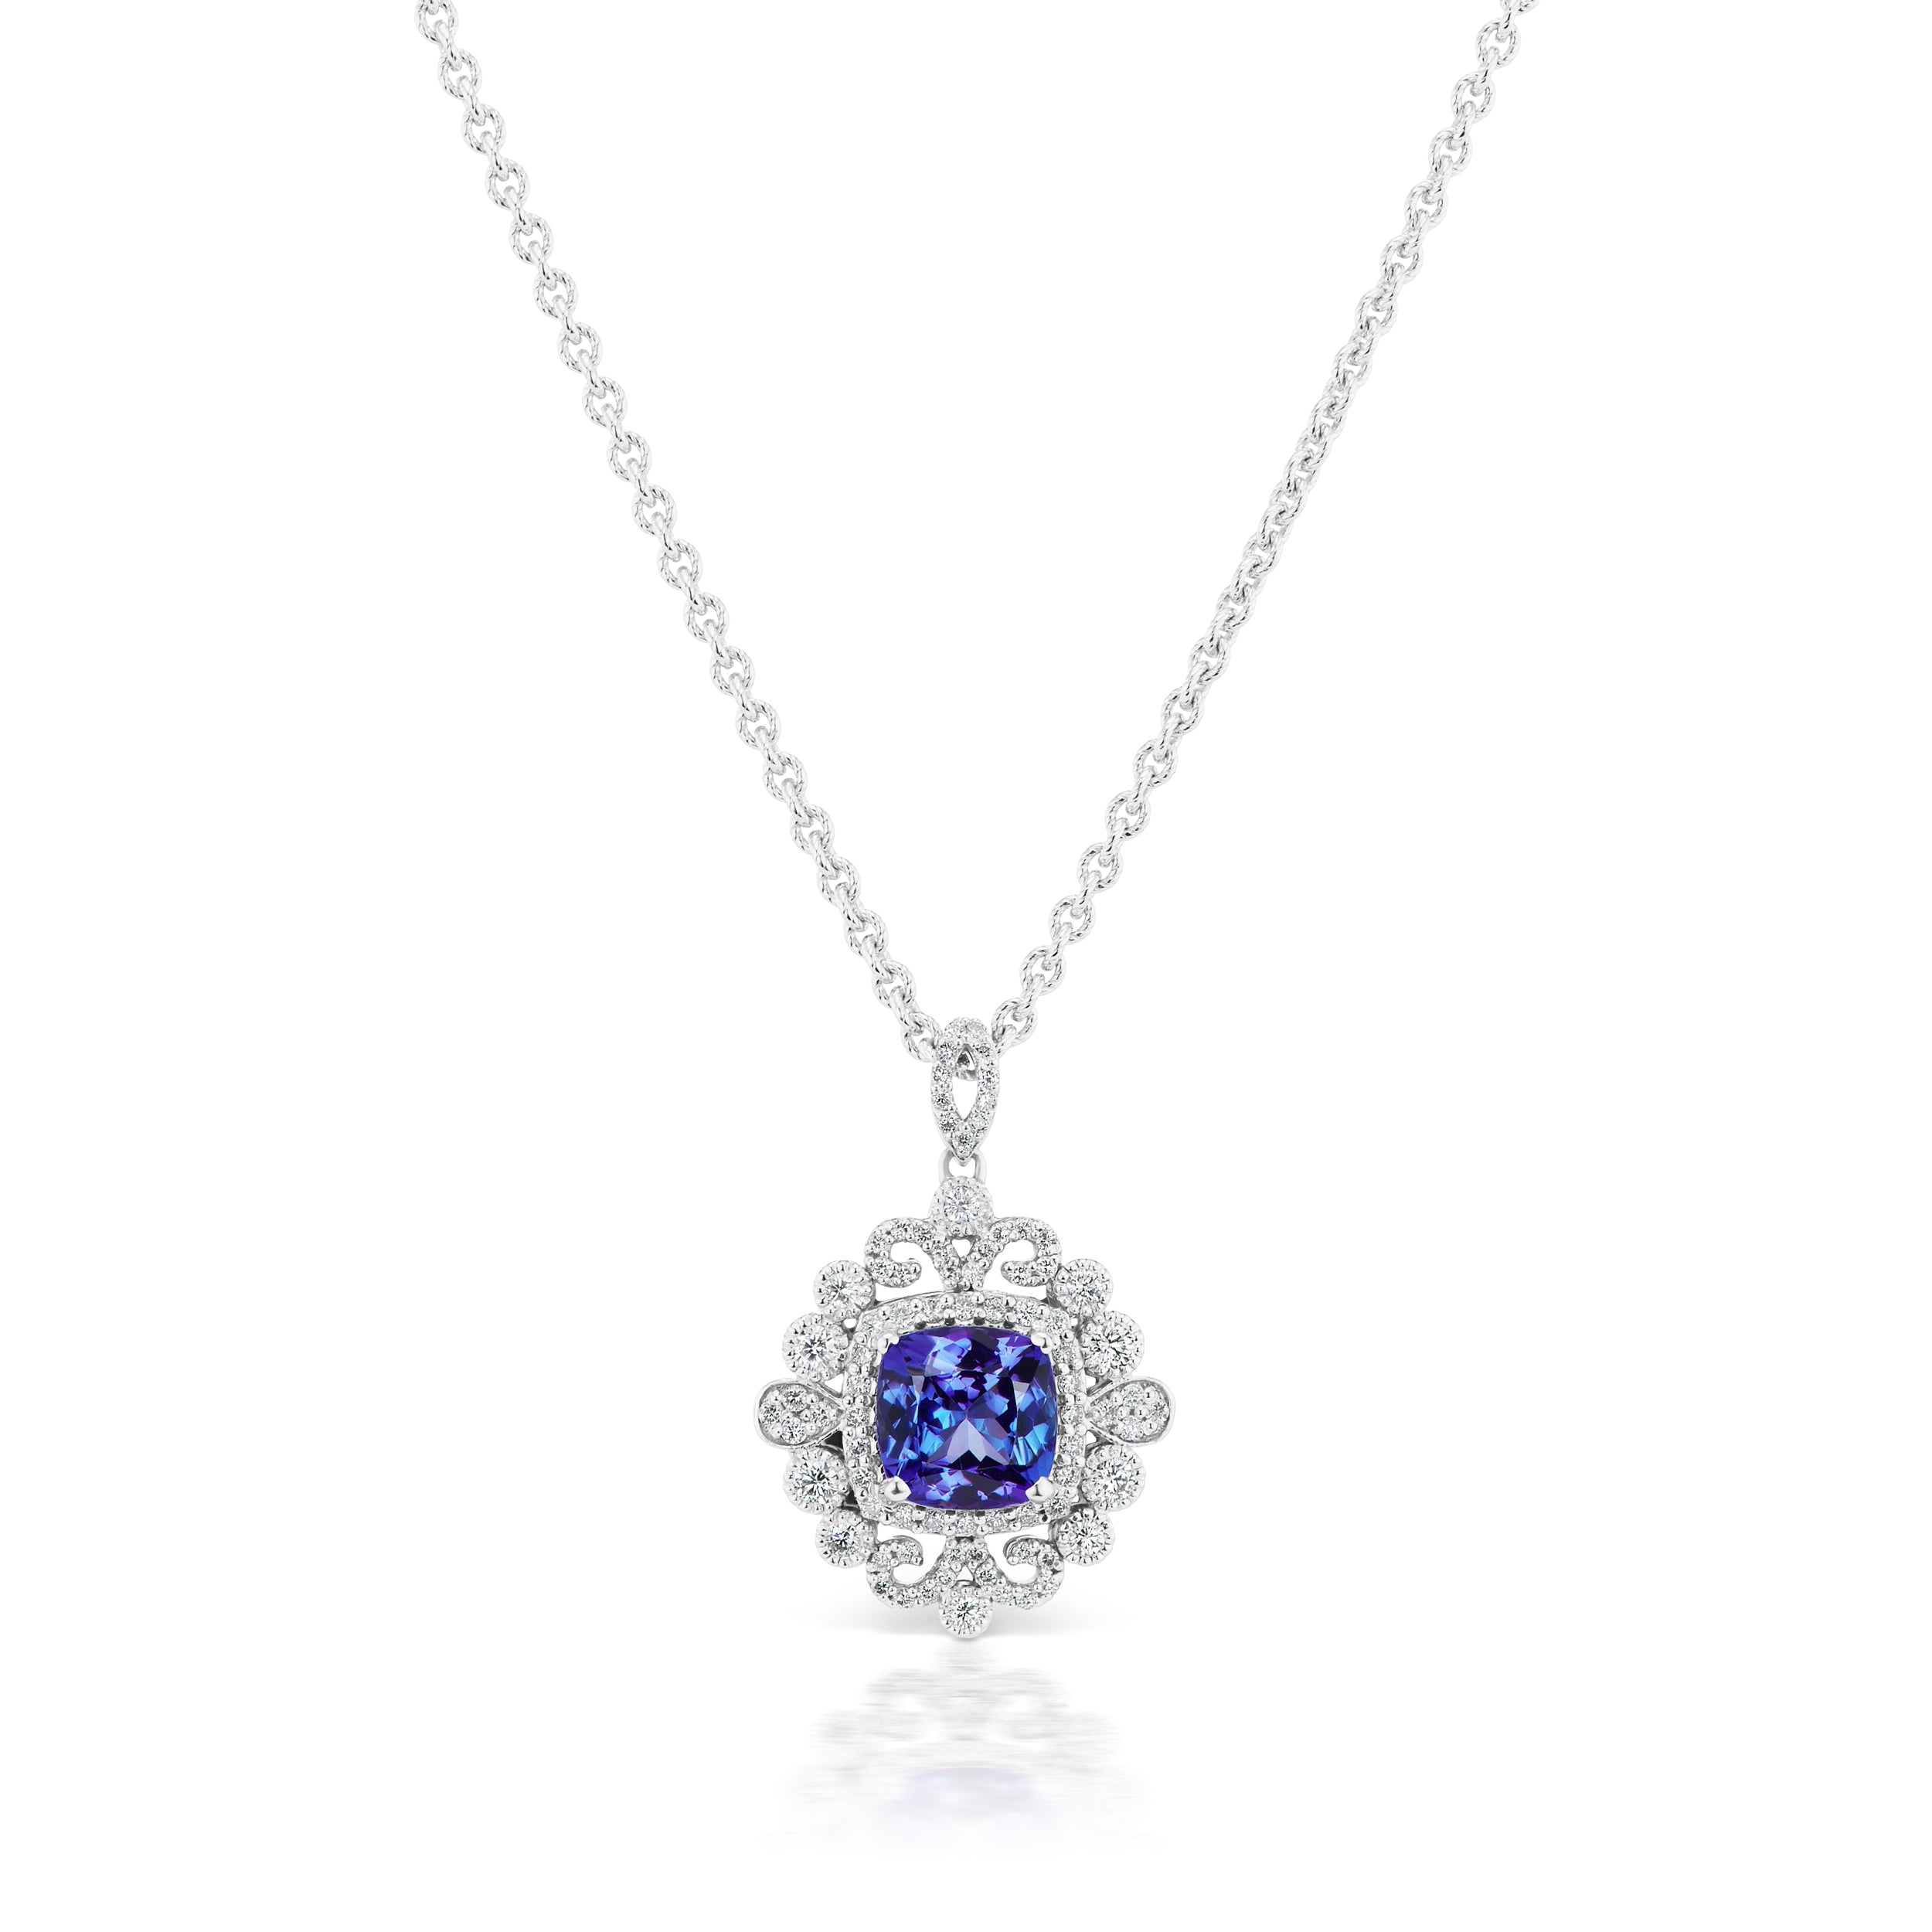 lot details tiffany by neckla lotfinder tanzanite and a necklace co nyr jewelry diamond